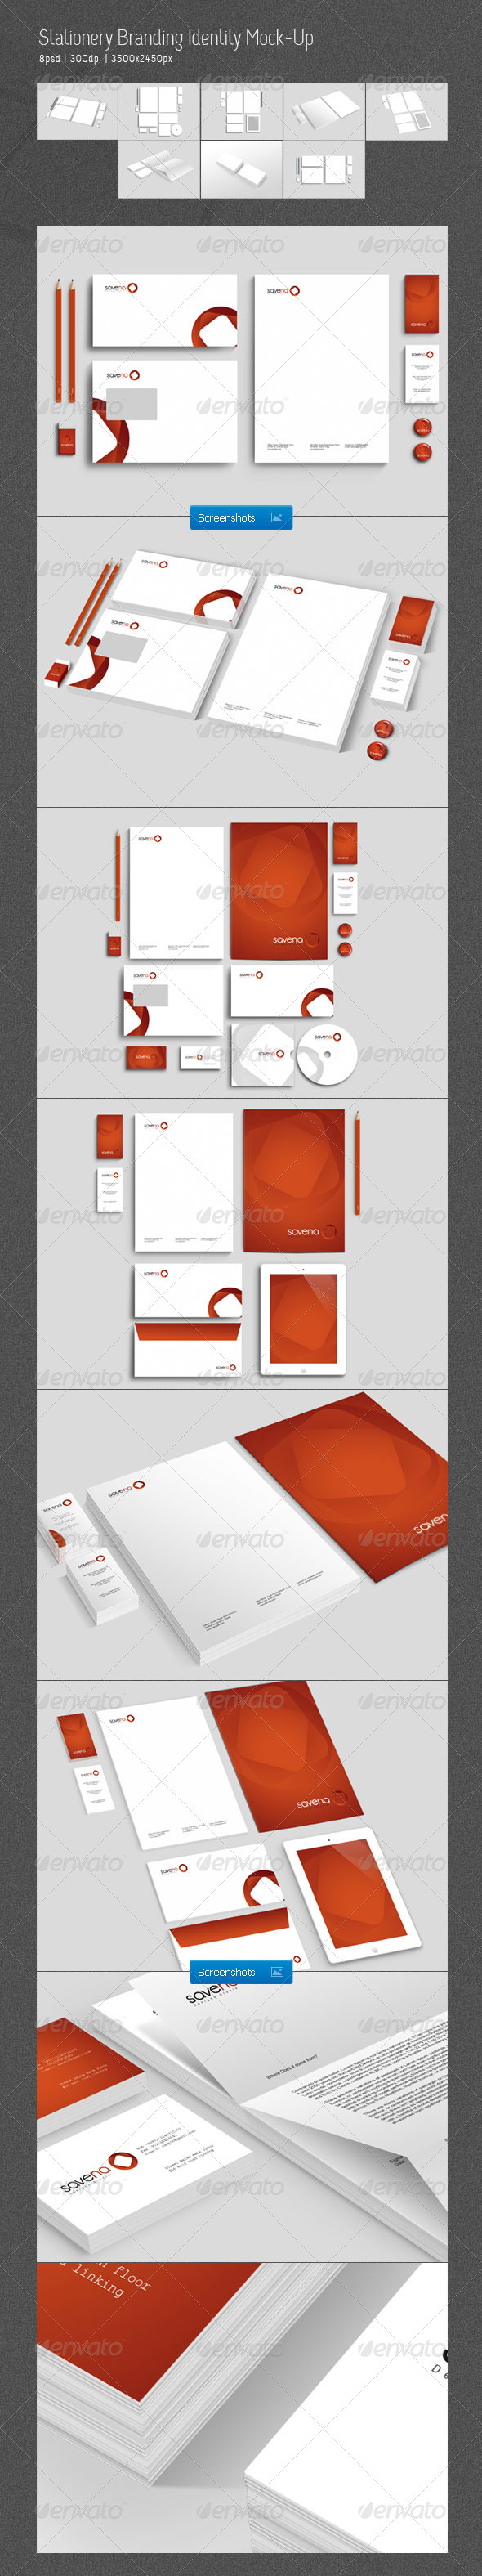 GraphicRiver Stationery Branding Identity Mock-Up 3245711